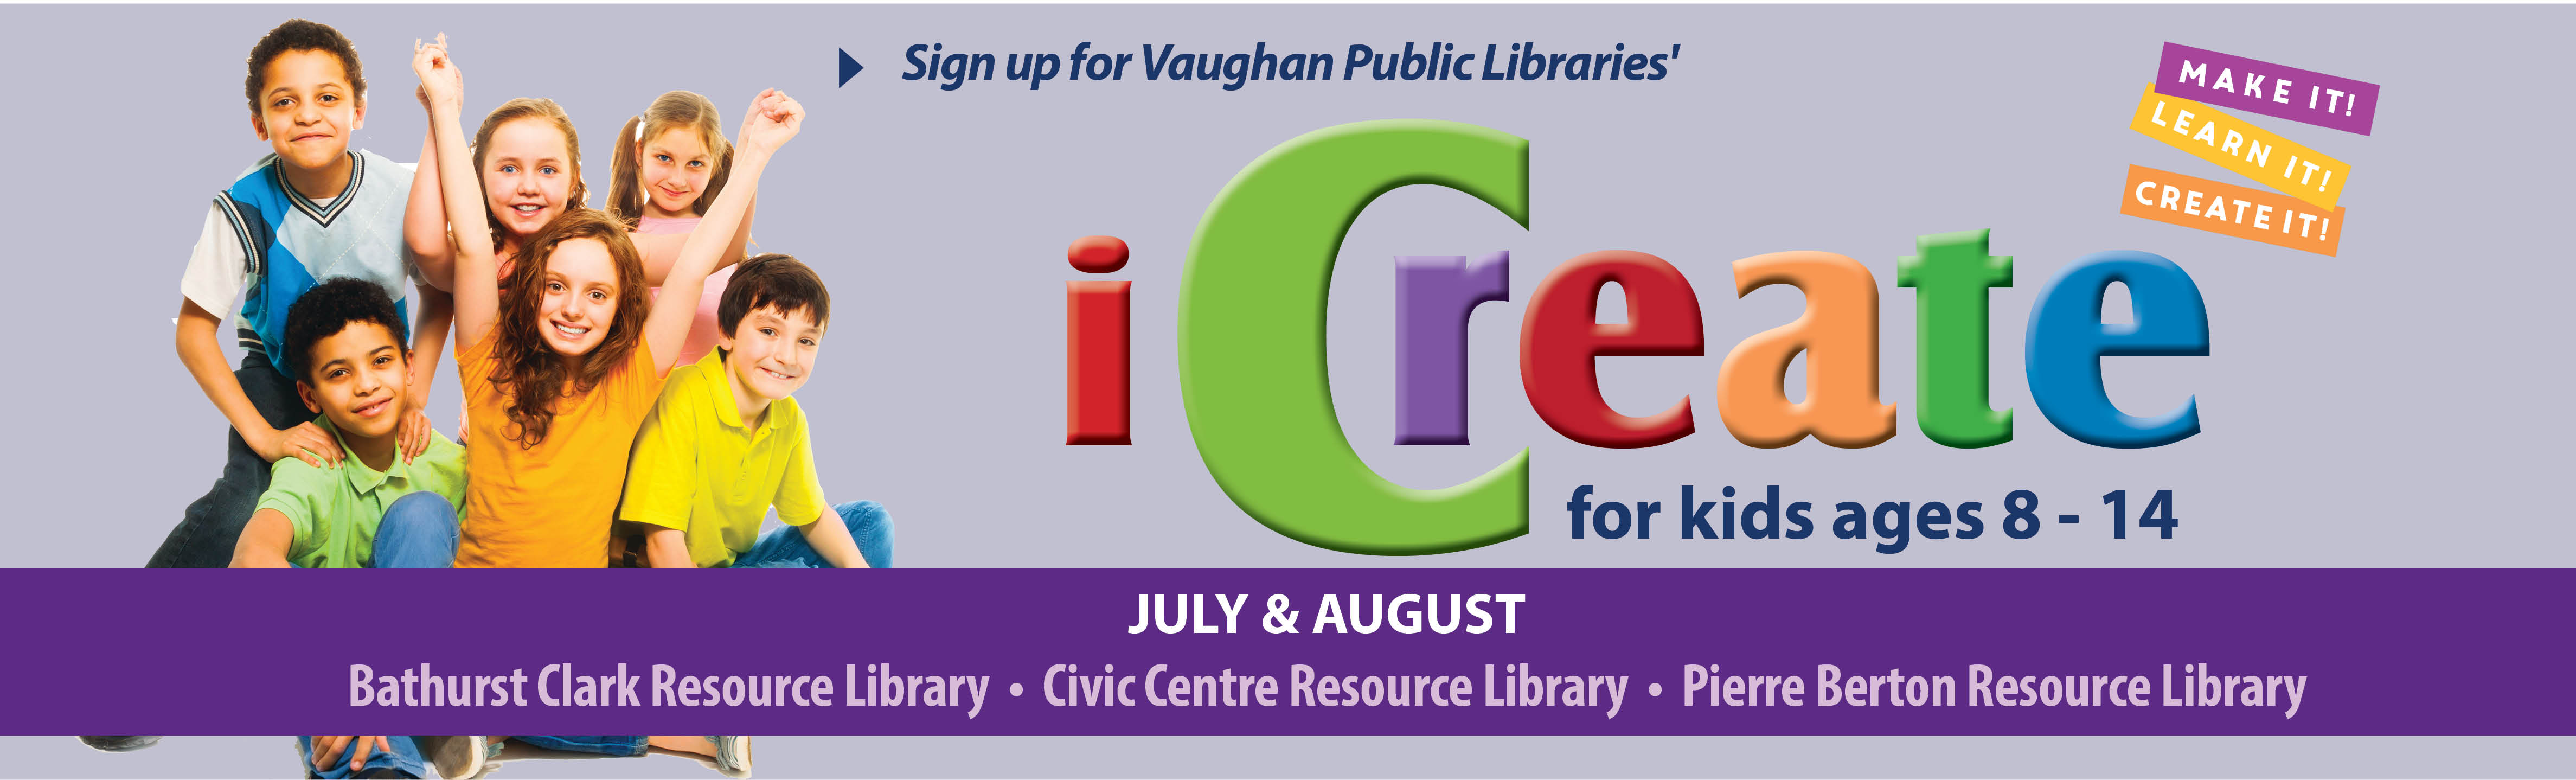 Banner promoting the iCreate Program at VPL